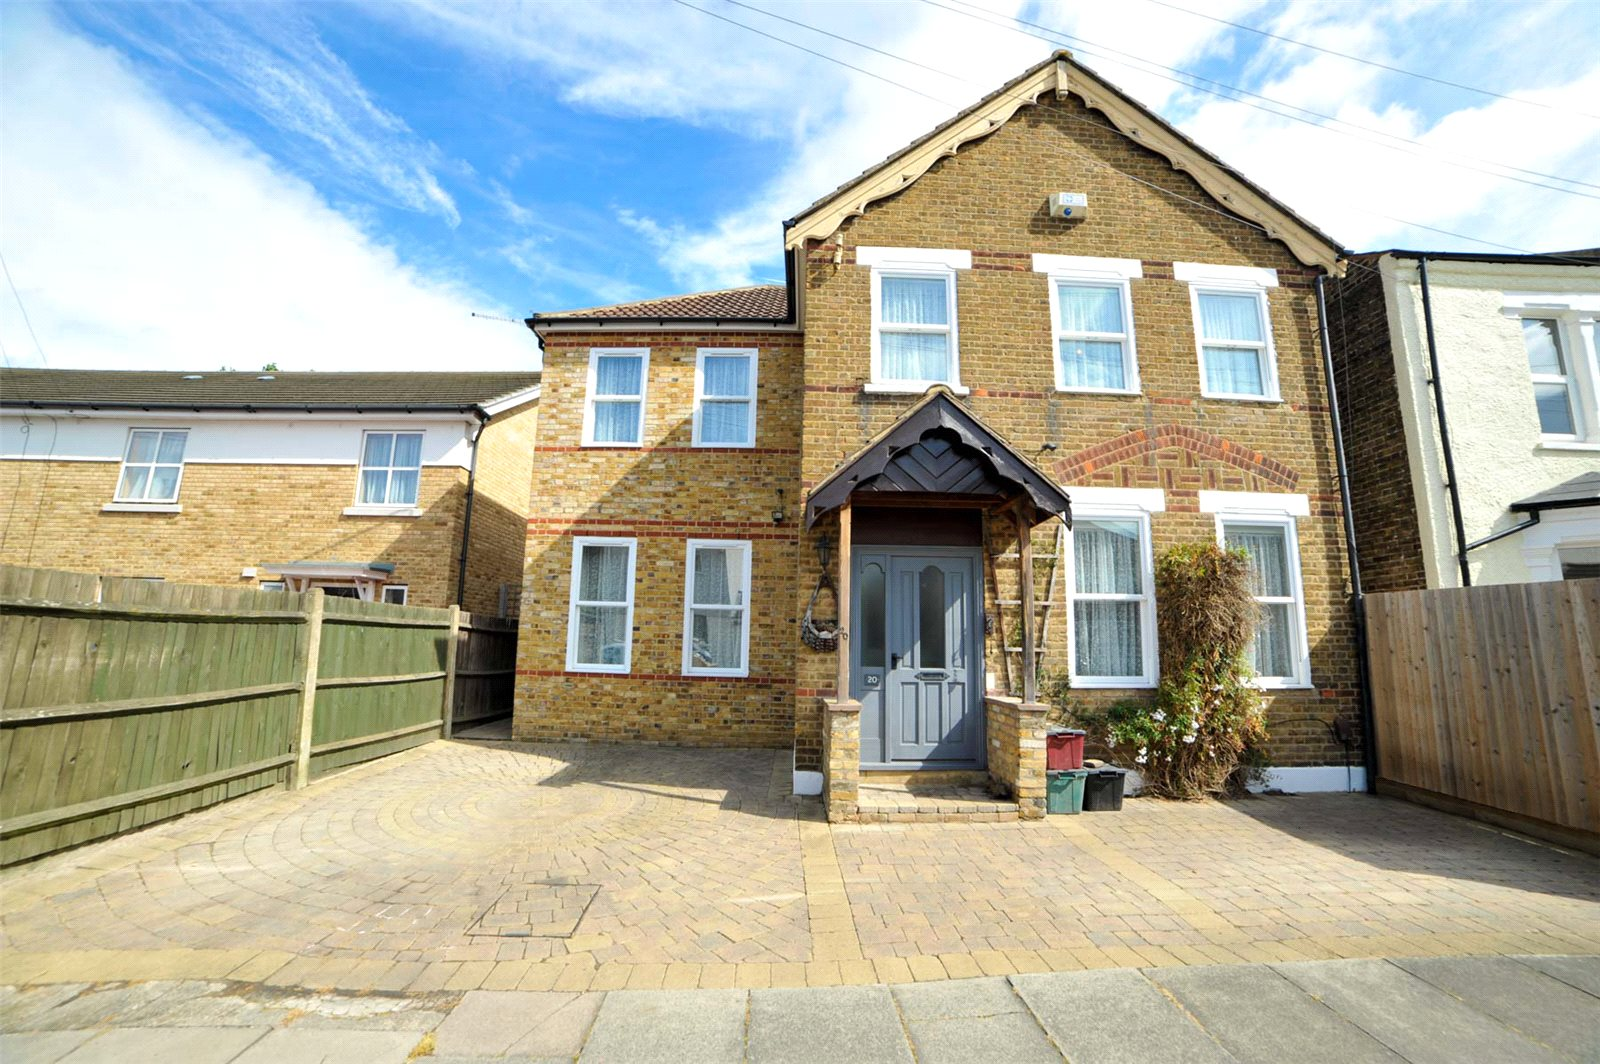 Burcharbro Road, Bostall Heath, London, SE2